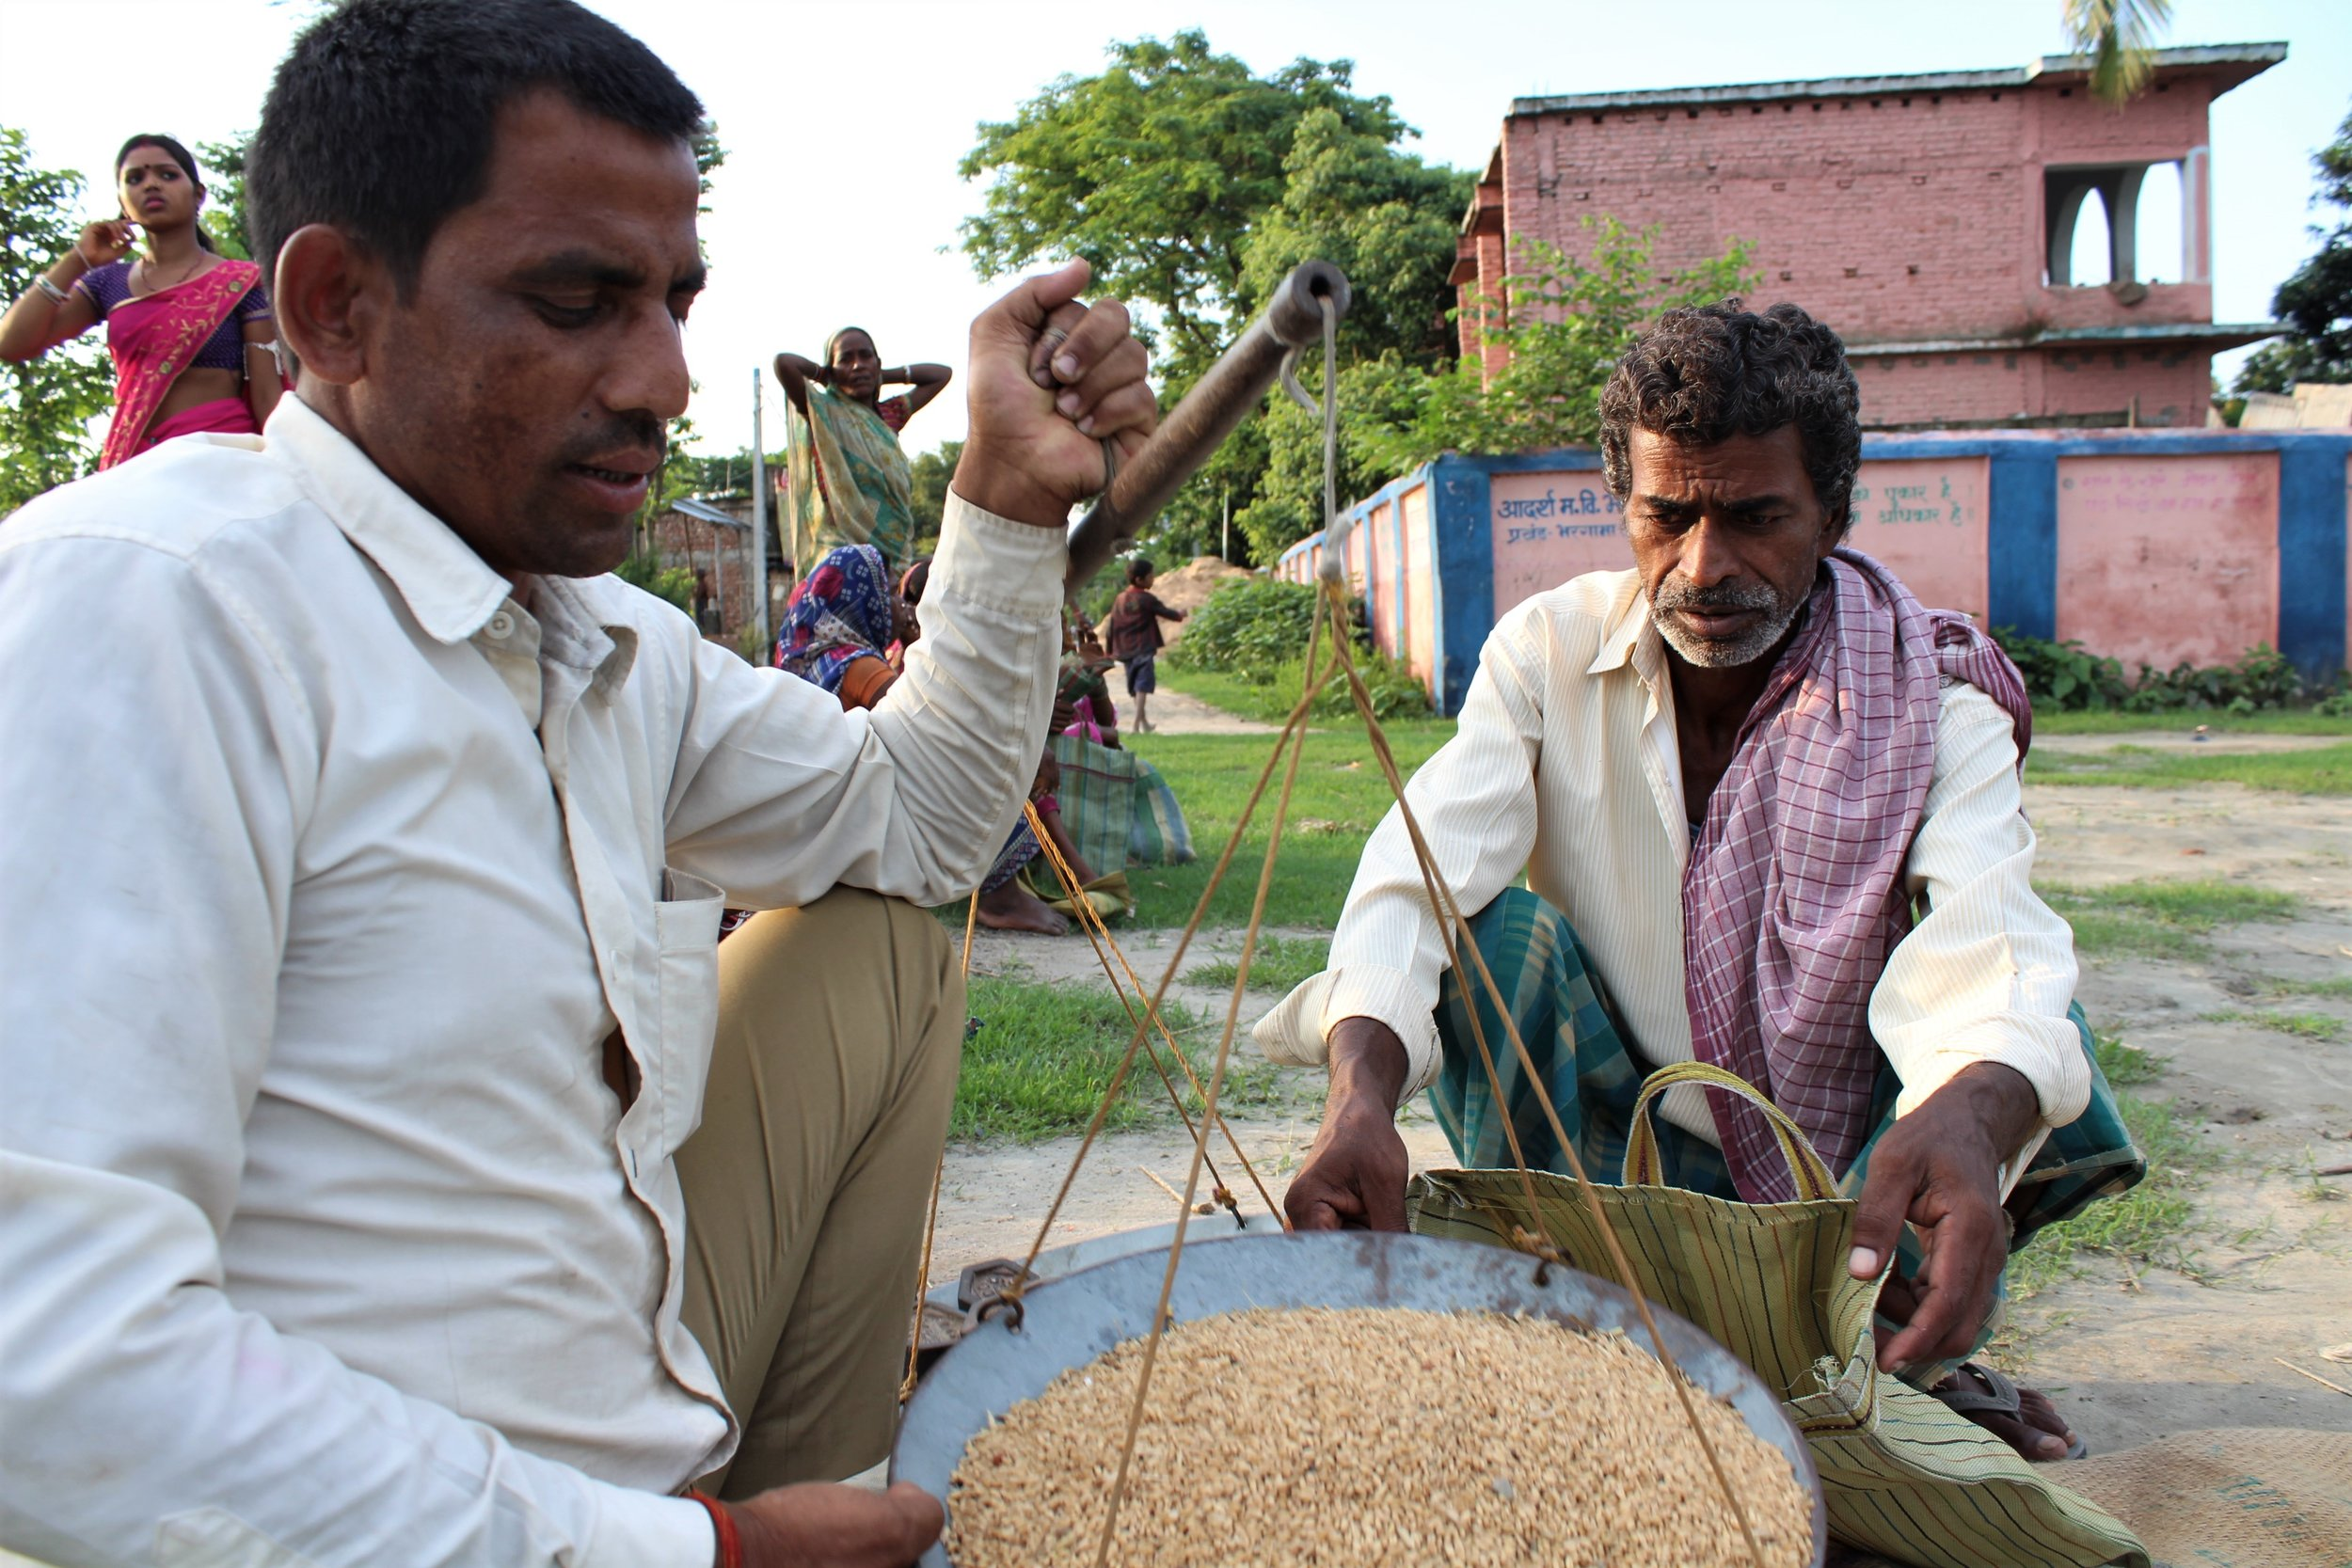 An upper caste shopkeeper buys grains from a Dalit landless worker. Credit: Atul Anand